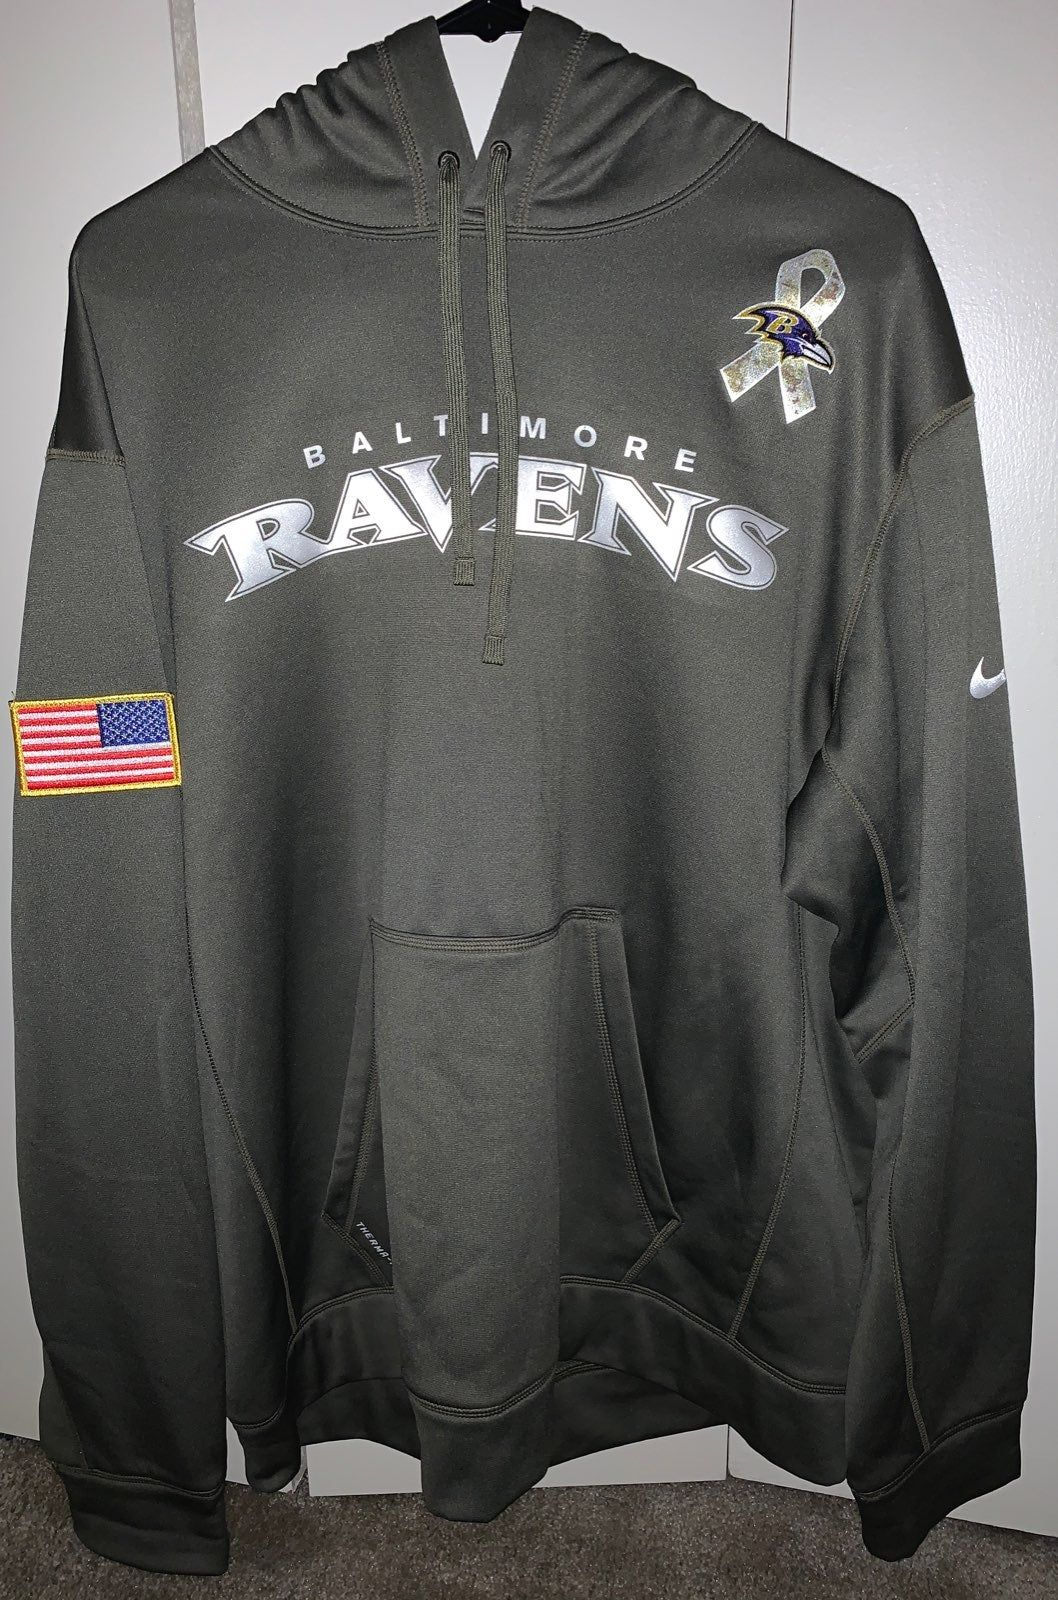 Predownload: Nike Baltimore Ravens Hoodie Salute To Service Men S Size Xl Olive Military Green With Camo Excellent Condition Only Worn Few T Hoodies Baltimore Ravens Nike [ 1600 x 1058 Pixel ]